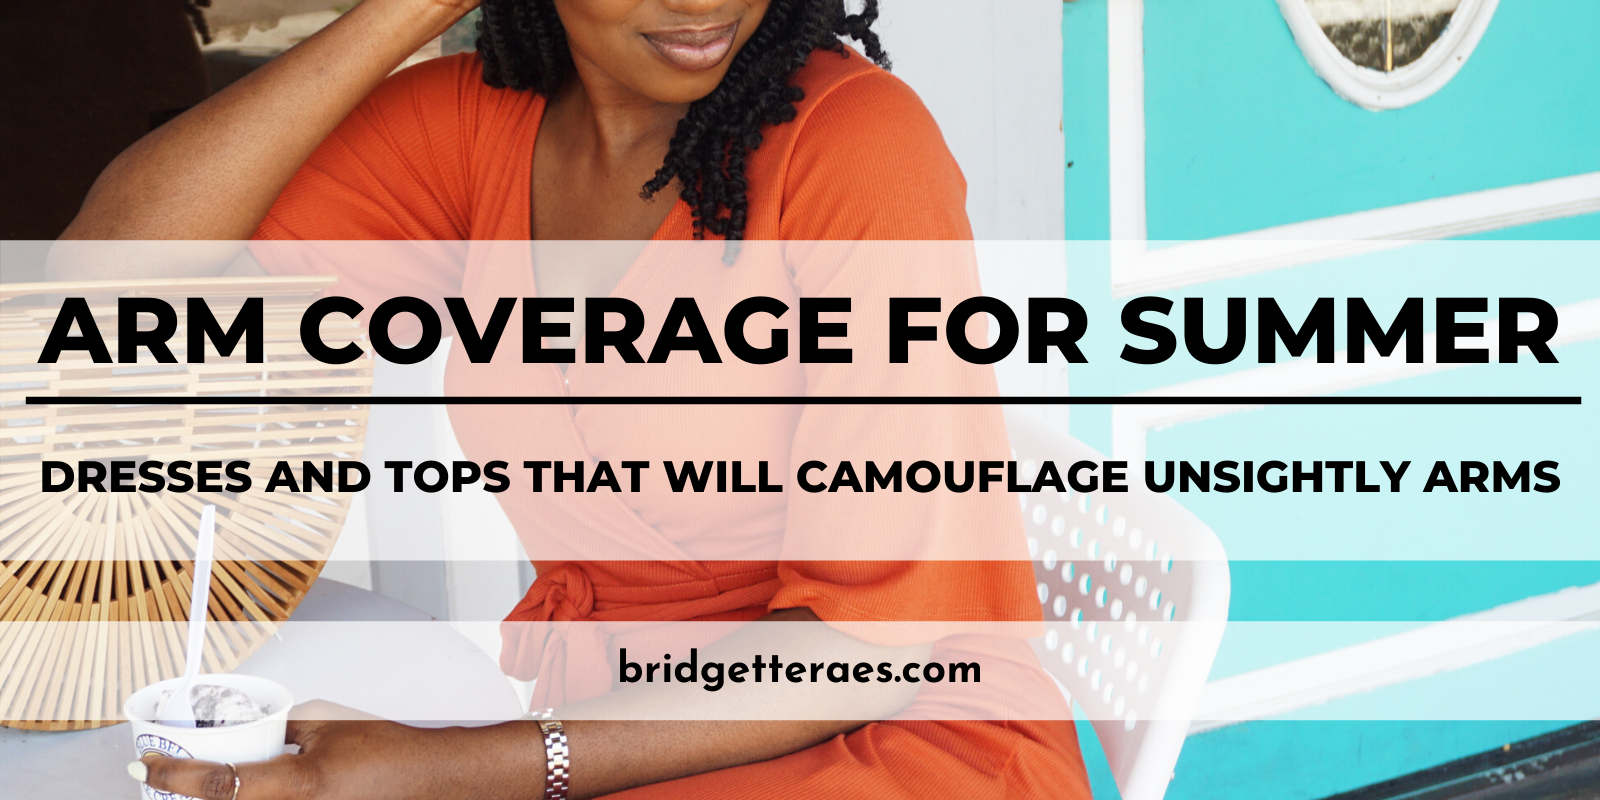 Arm Coverage For Summer: Dresses and Tops that will Camouflage Unsightly Arms